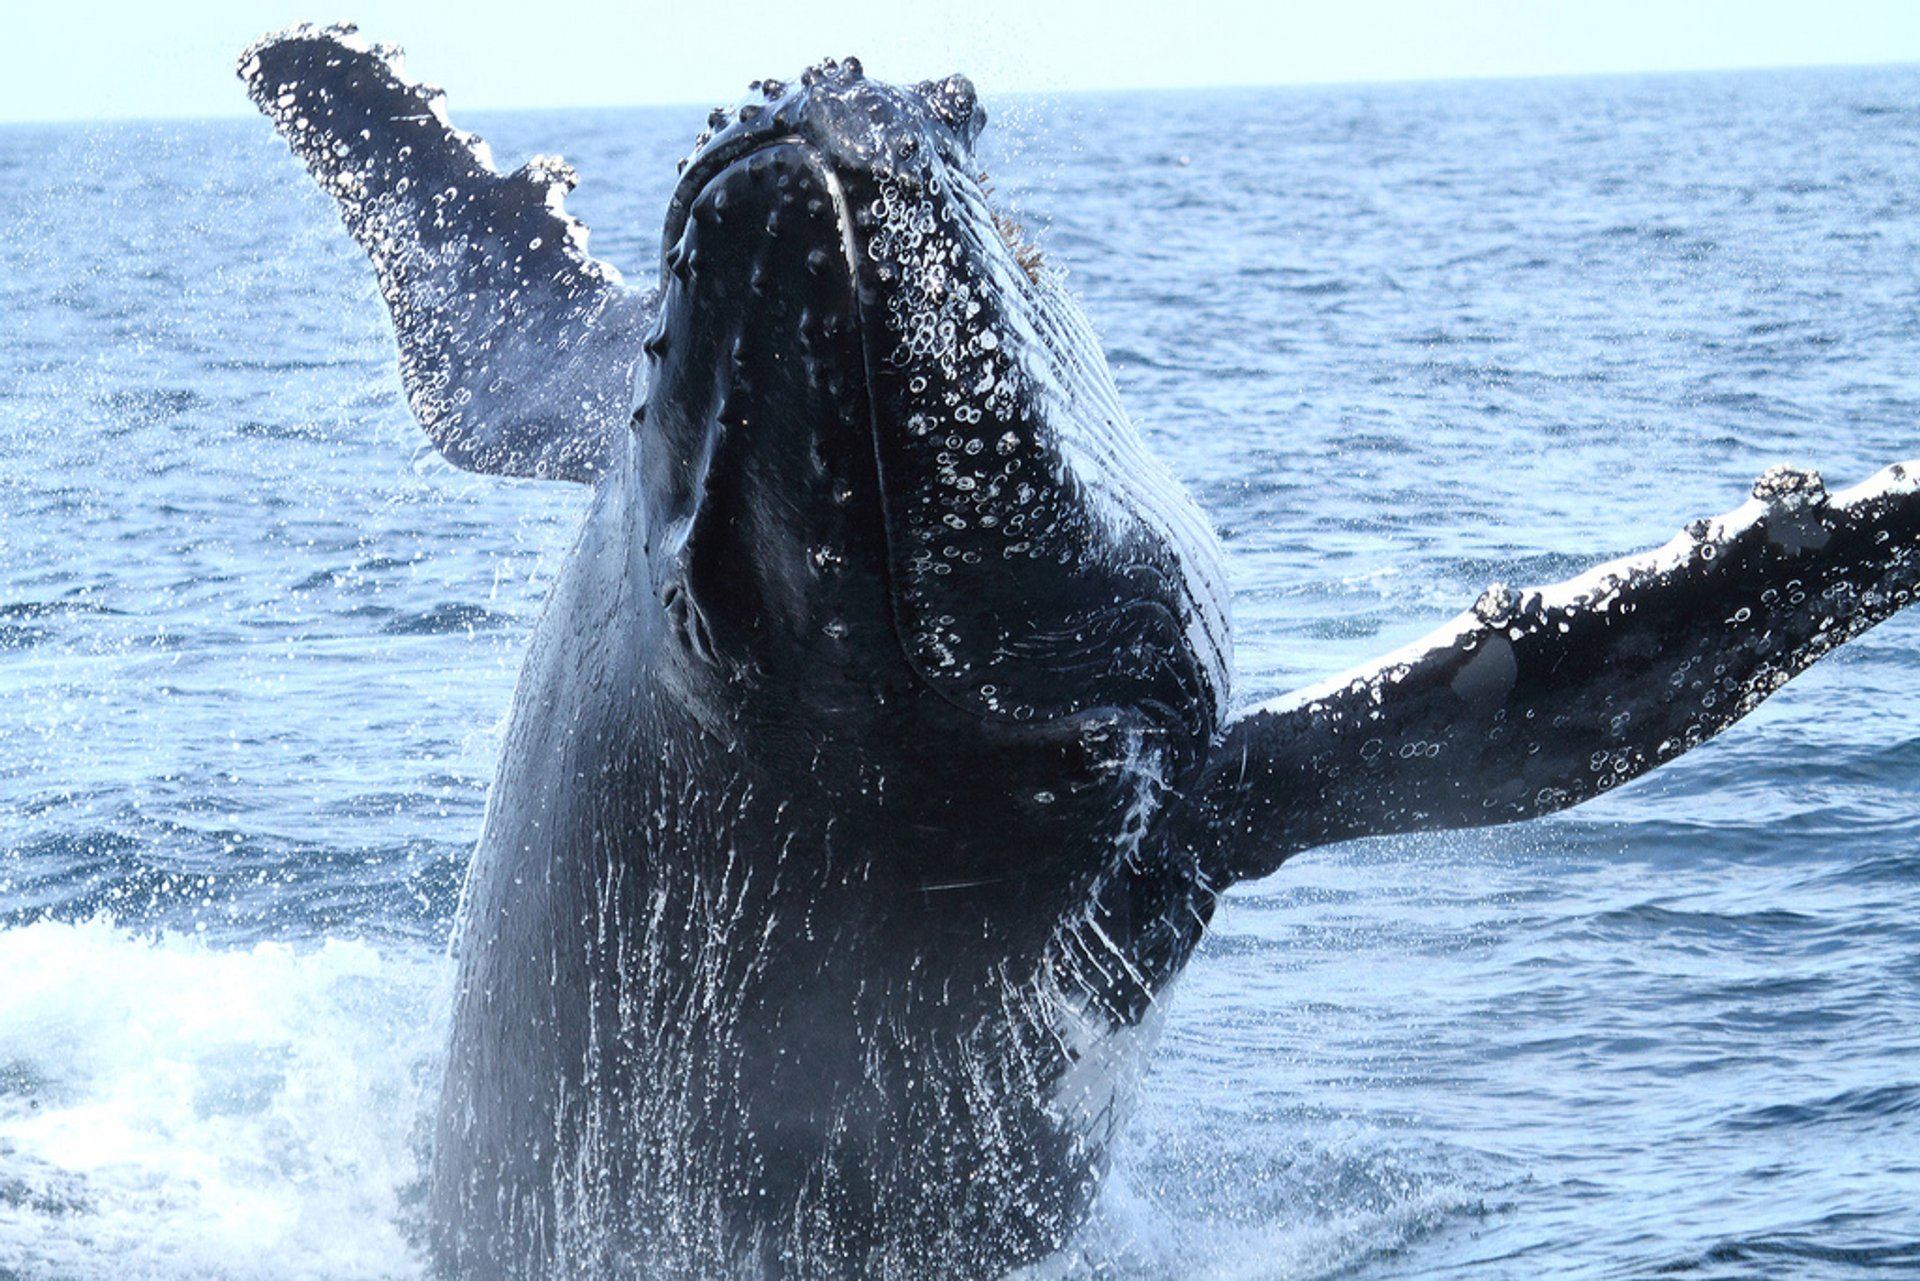 Whale Watching in NSW in New South Wales 2019 - Best Time